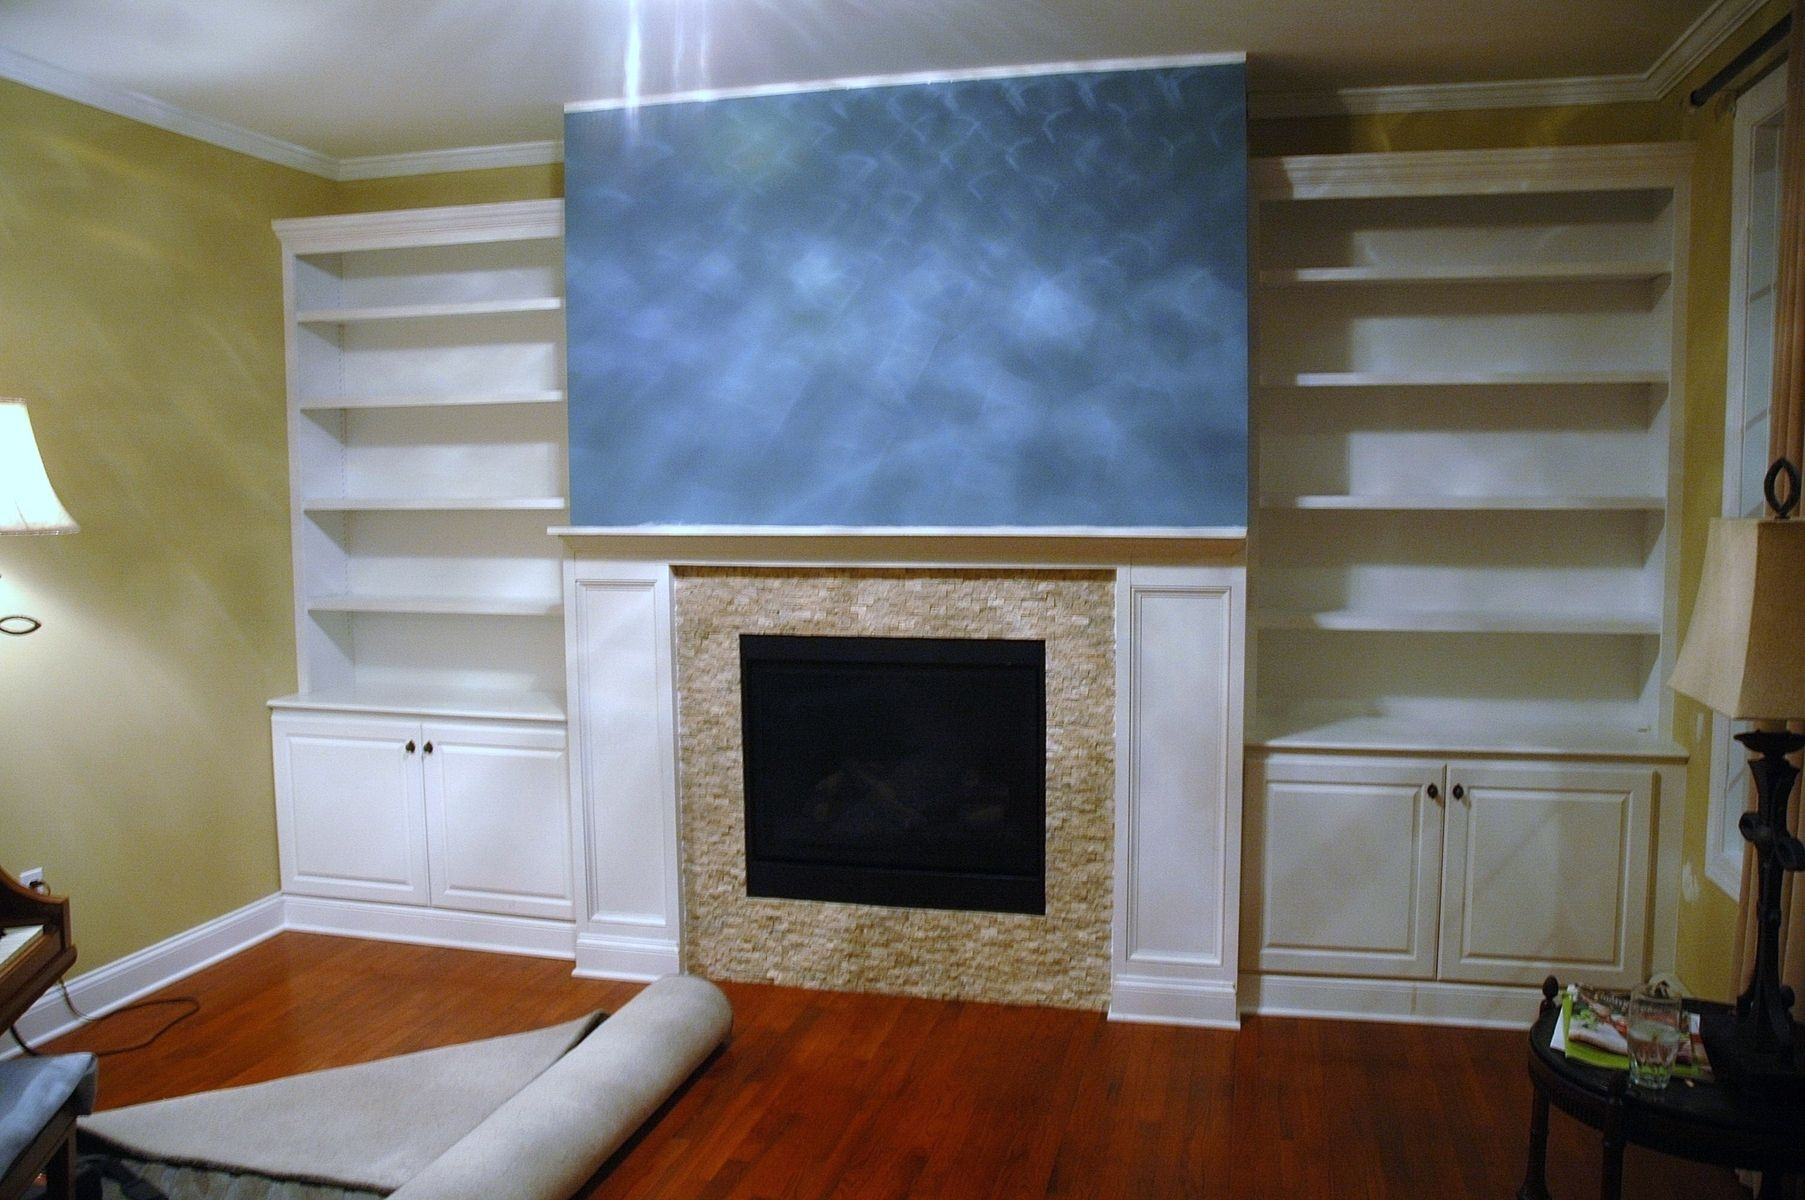 Handmade Built In Bookcases Base Cabinets And Fireplace Surround Regarding Bookcase With Cabinet Base (View 2 of 15)